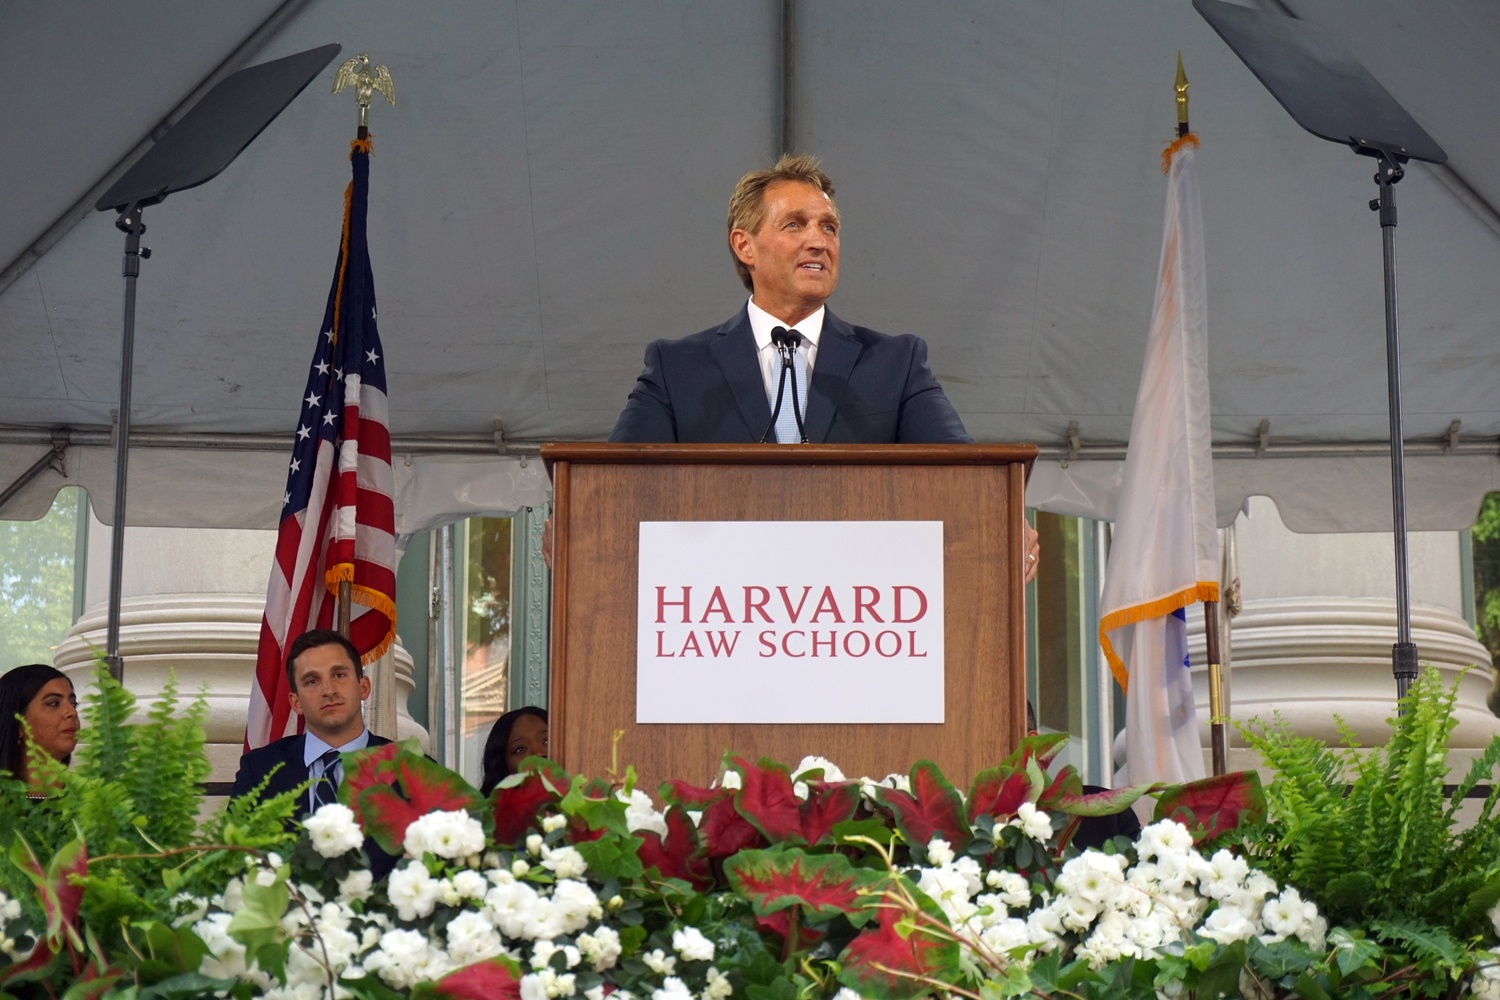 Republican U.S. Senator Jeffry L. Flake speaks at Harvard Law School Class Day in 2018.